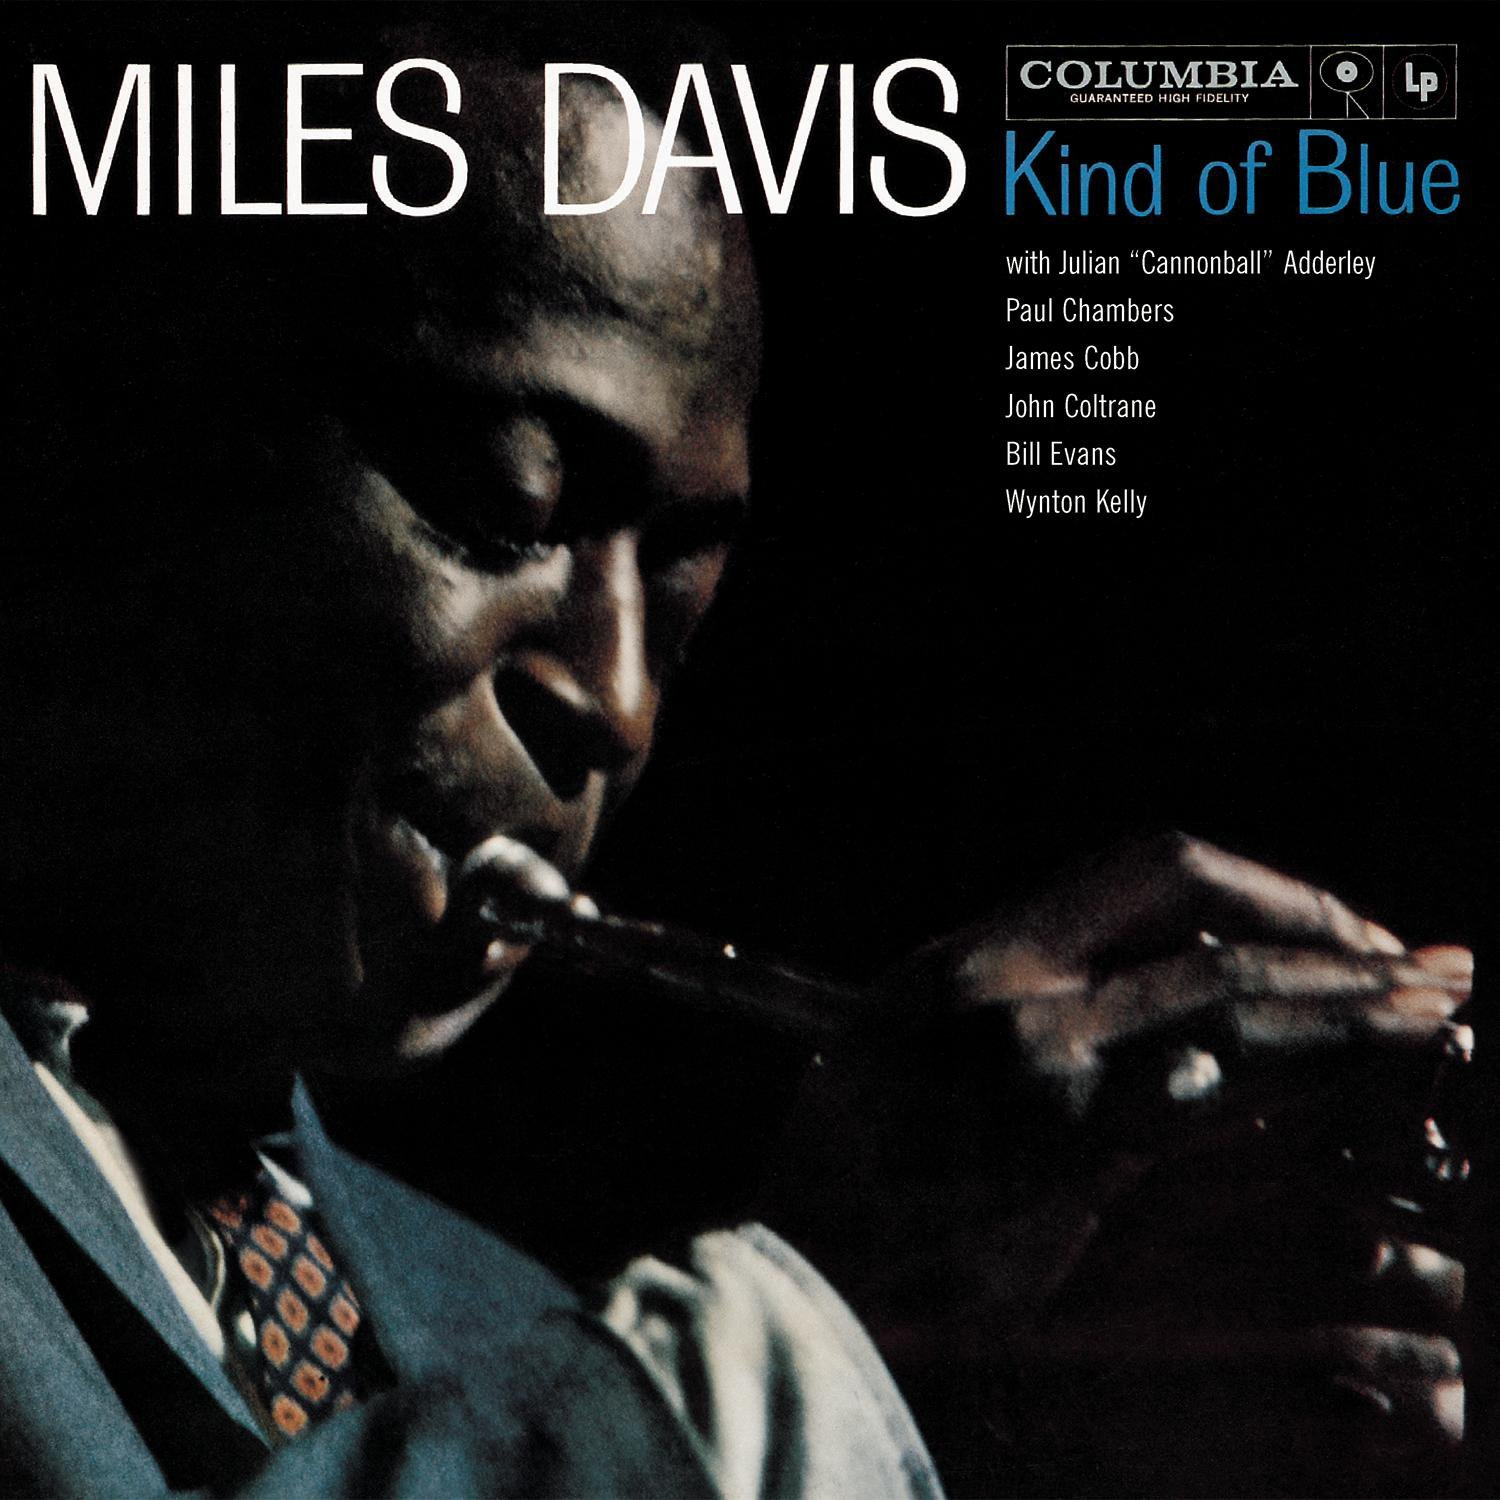 nancy-miles-davis-king-of-blue